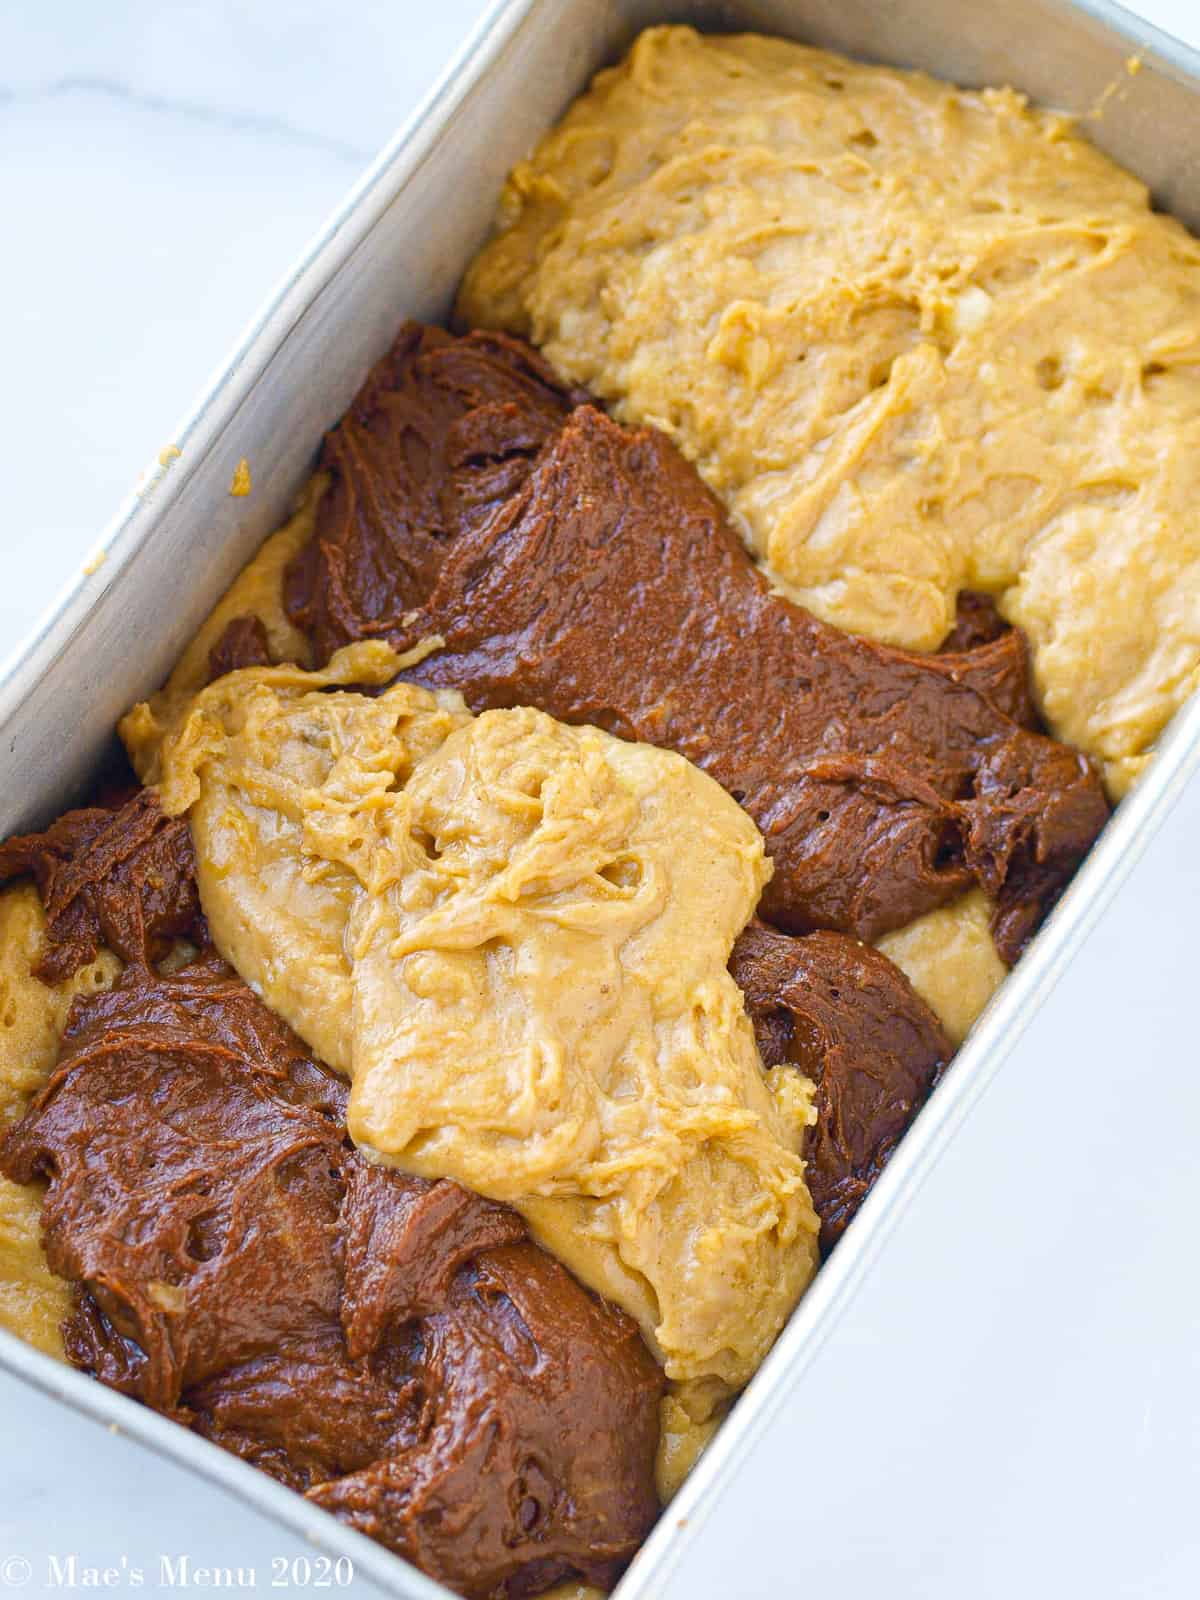 Scoops of the banana bread batter scattered throughout a loaf baking pan